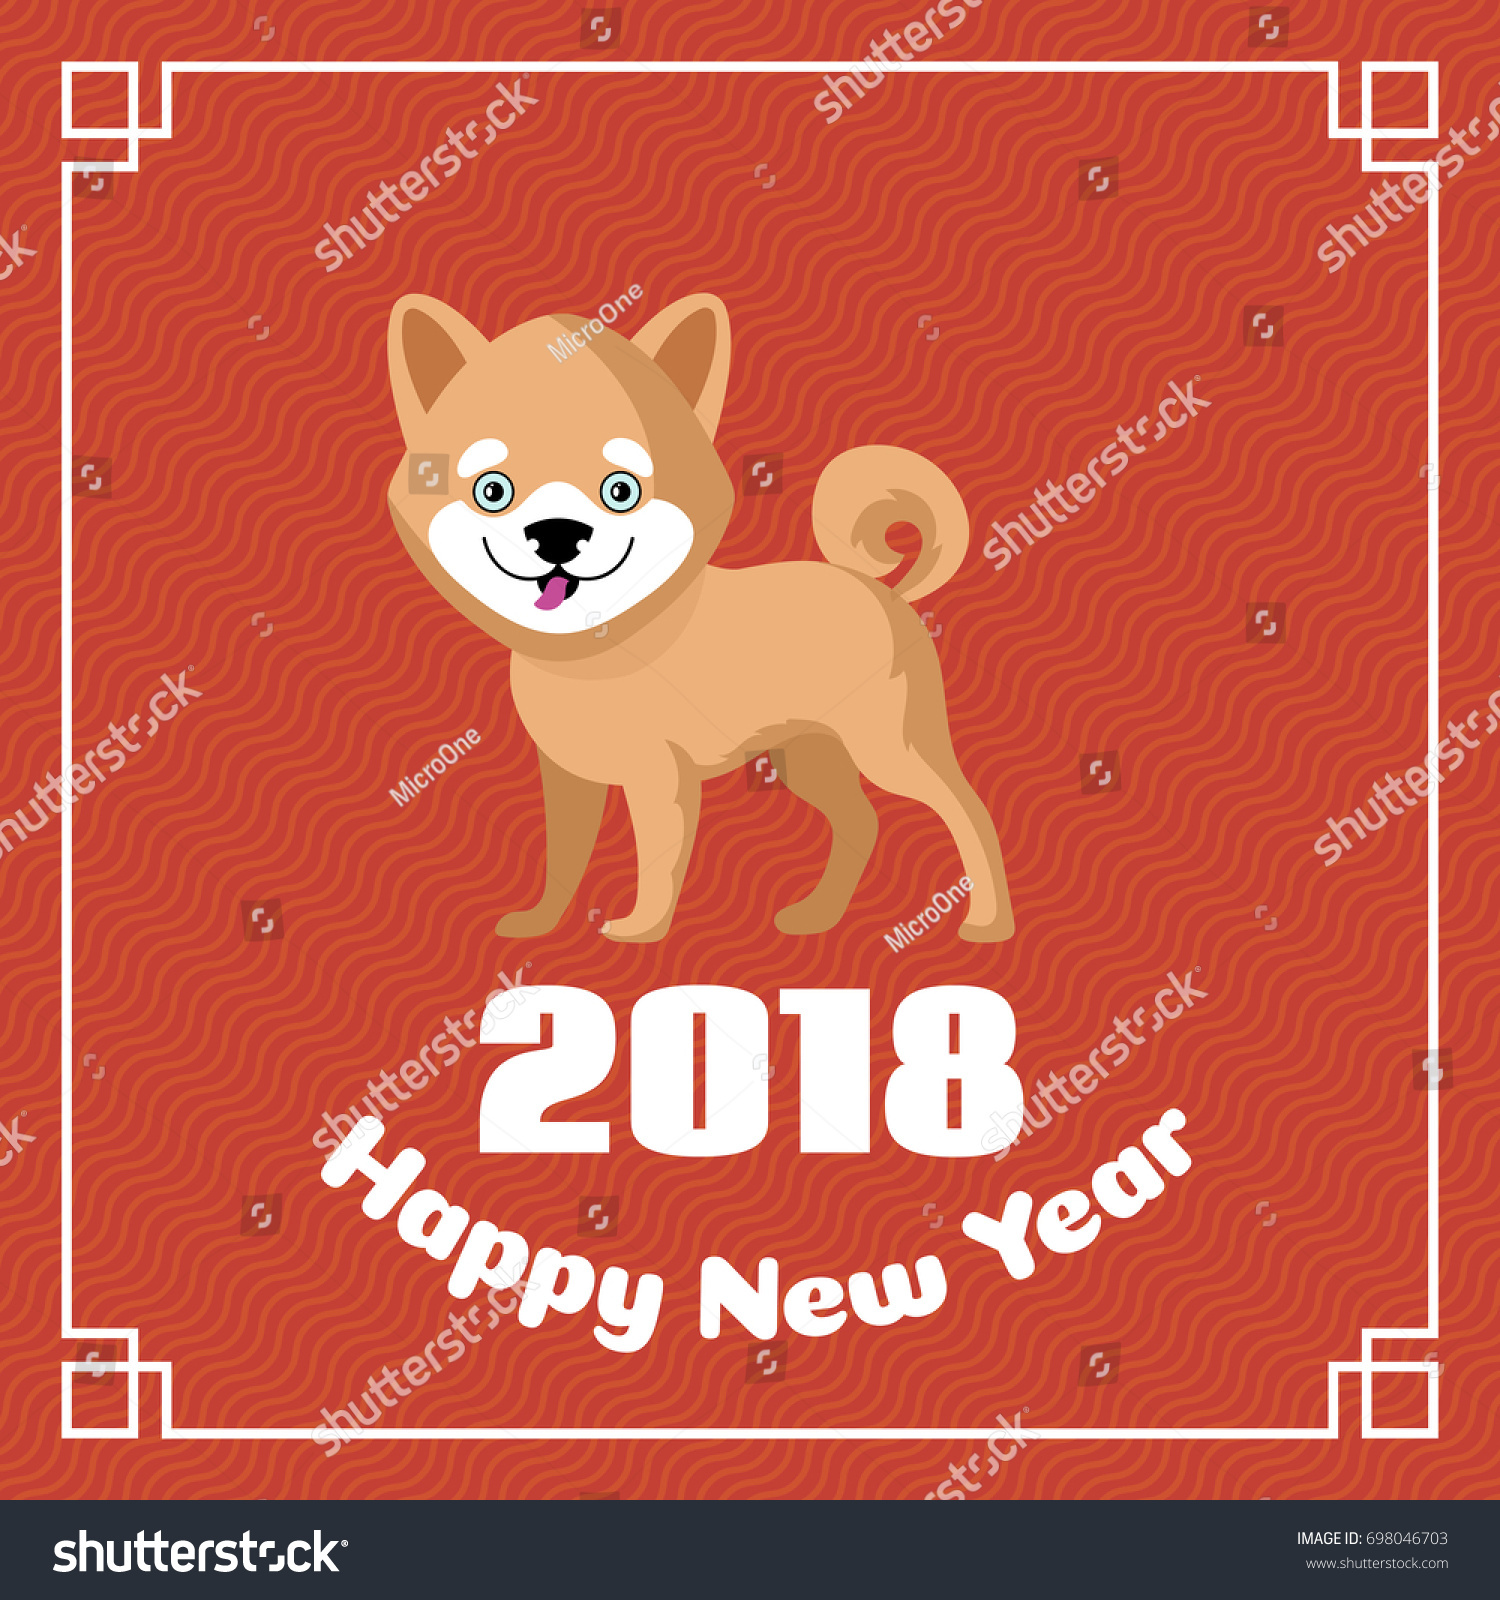 happy chinese new year 2018 greeting background with cute dog china new year illustration